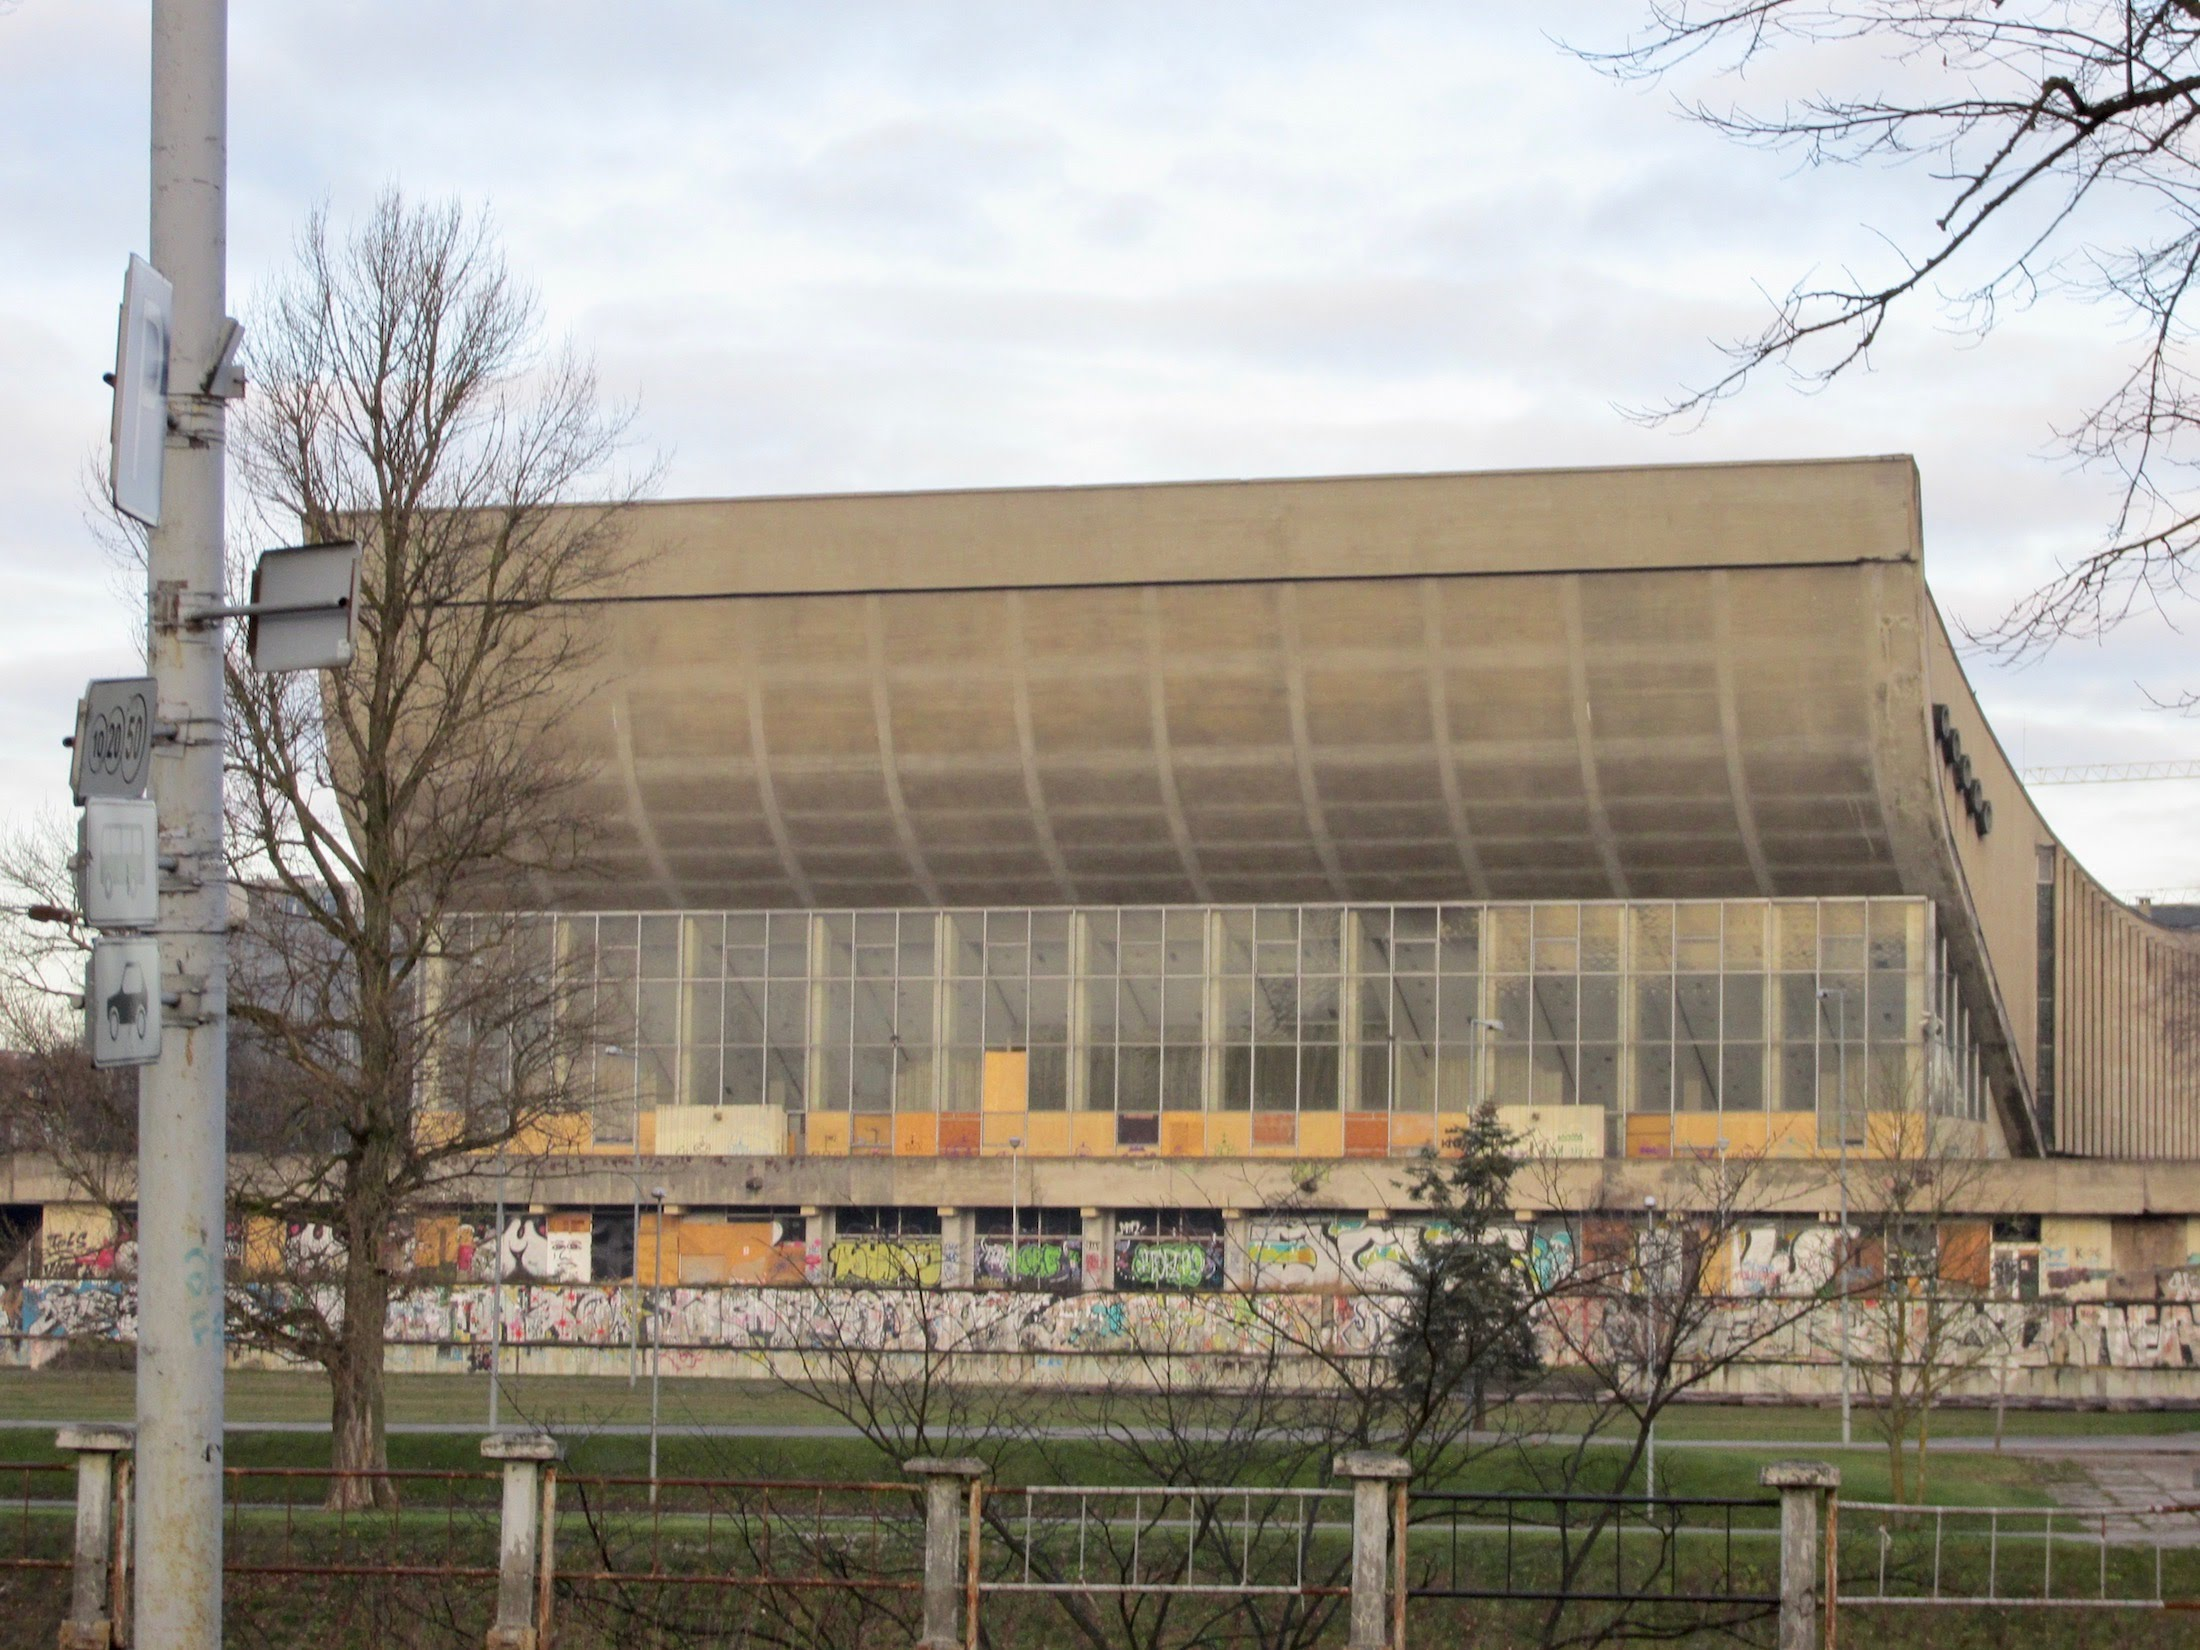 Palace of Concerts and Sports in Vilnius, Soviet-era architecture